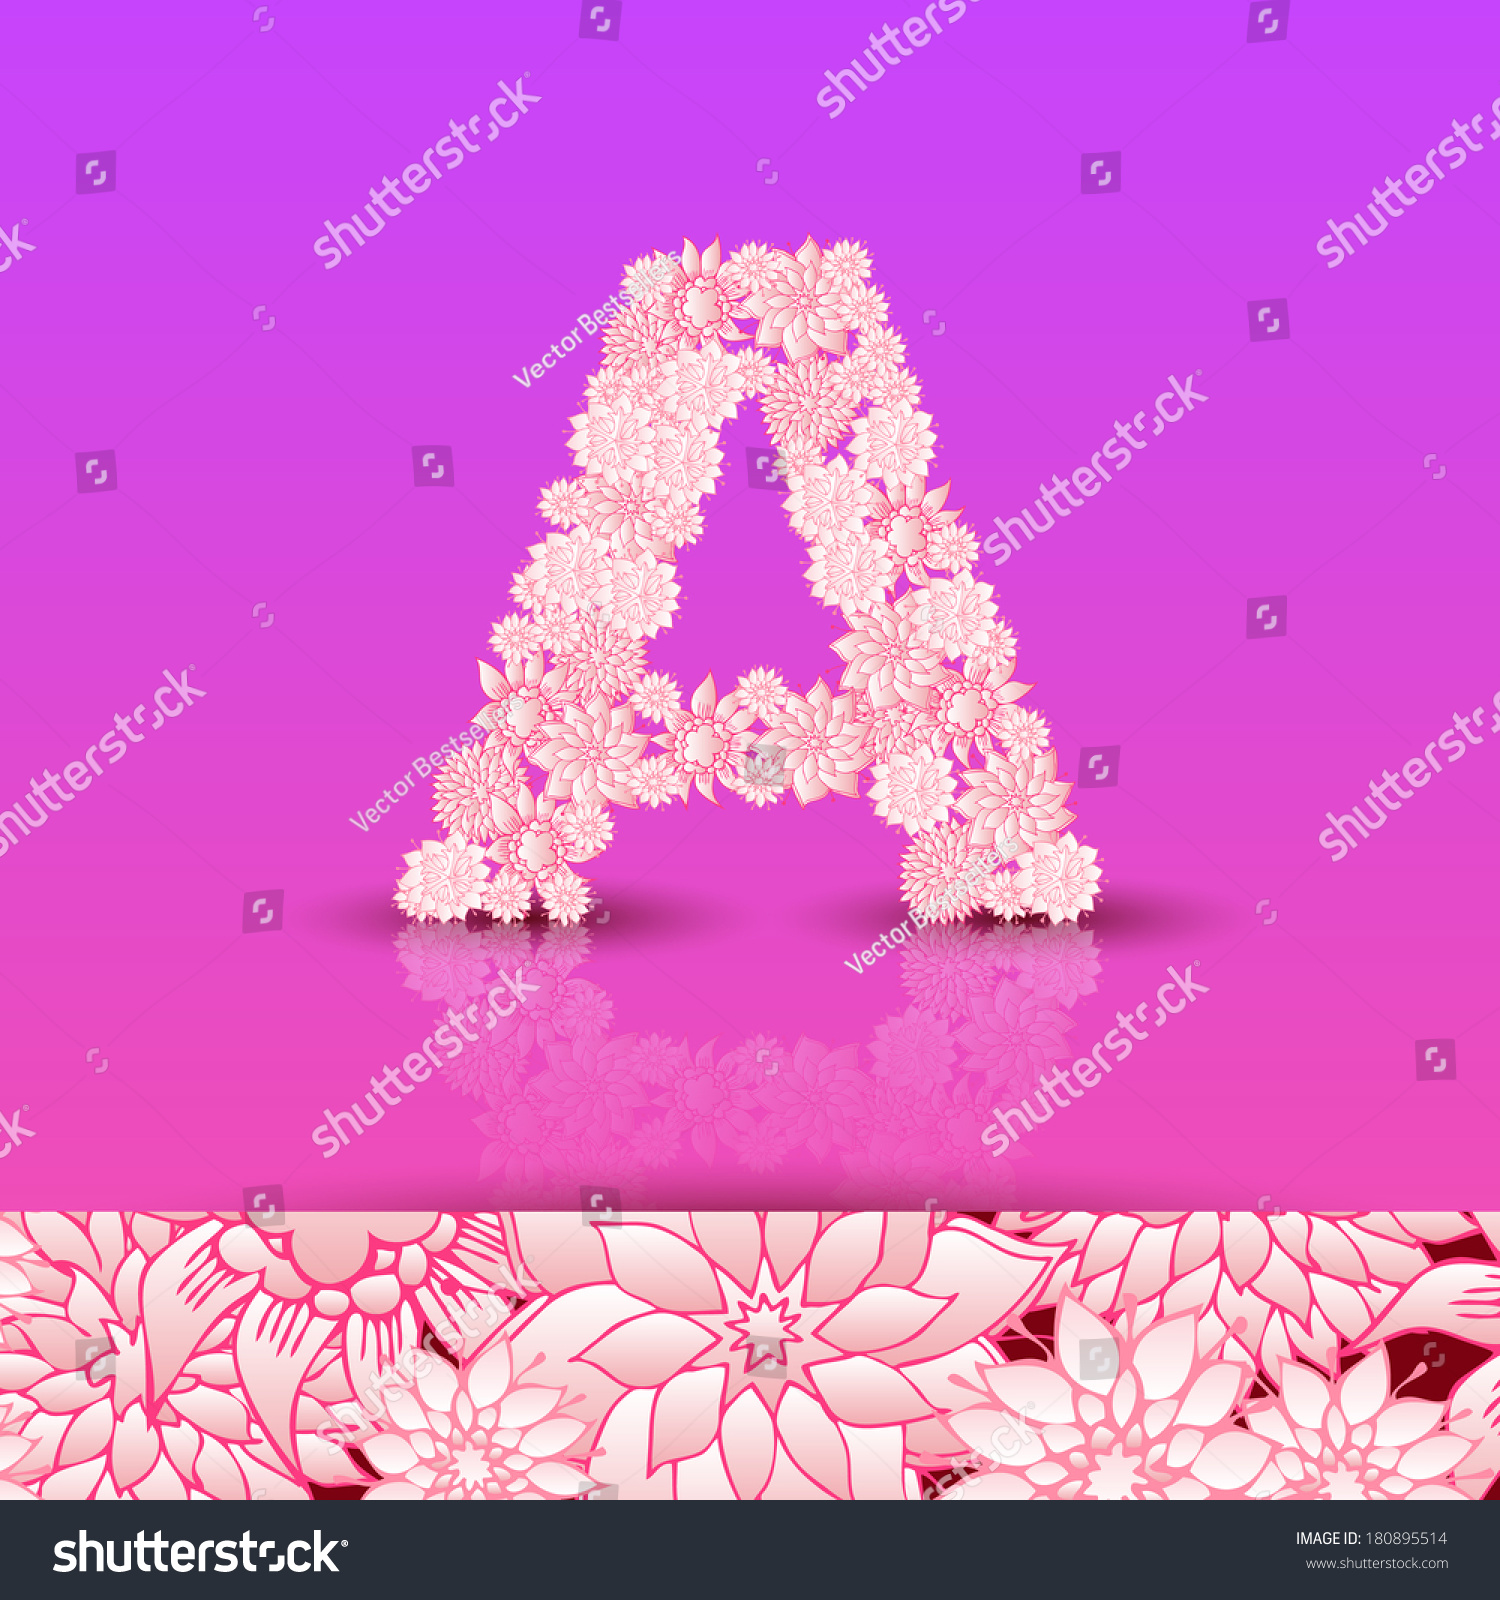 Letter A Bright Floral Element Colorful Stock Vector (Royalty Free ...